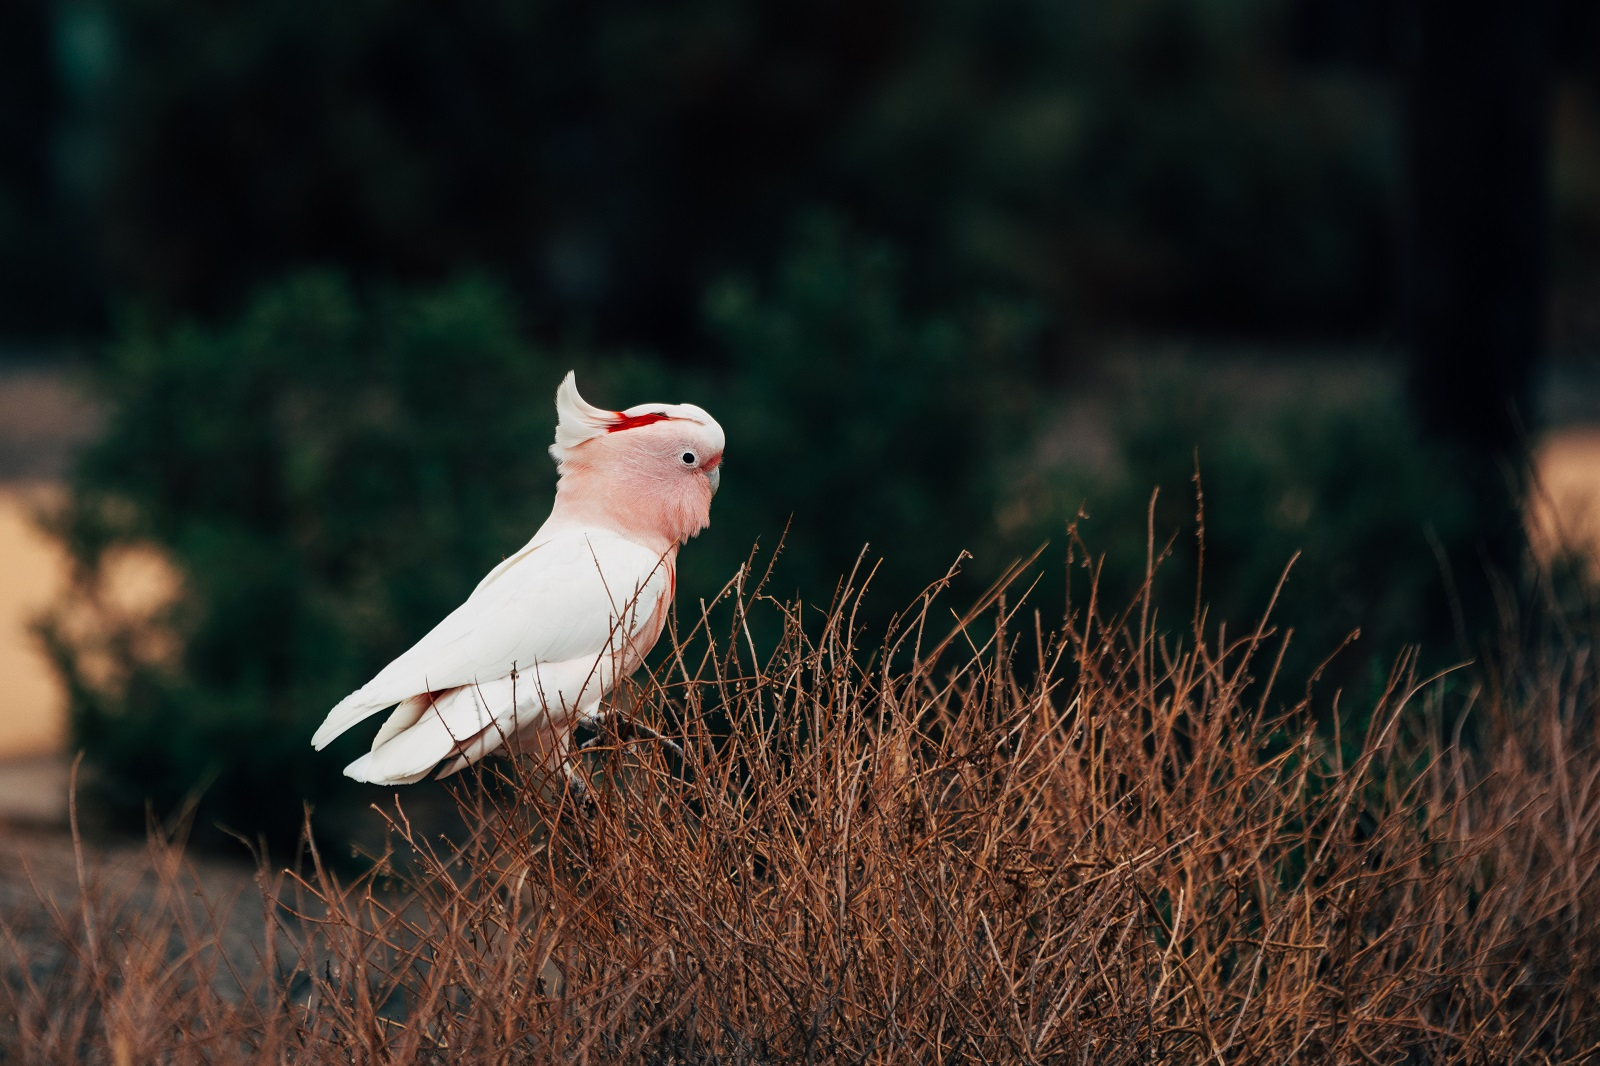 Major Mitchell's cockatoo at Mungo National Park. Photo: Melissa Findley/OEH